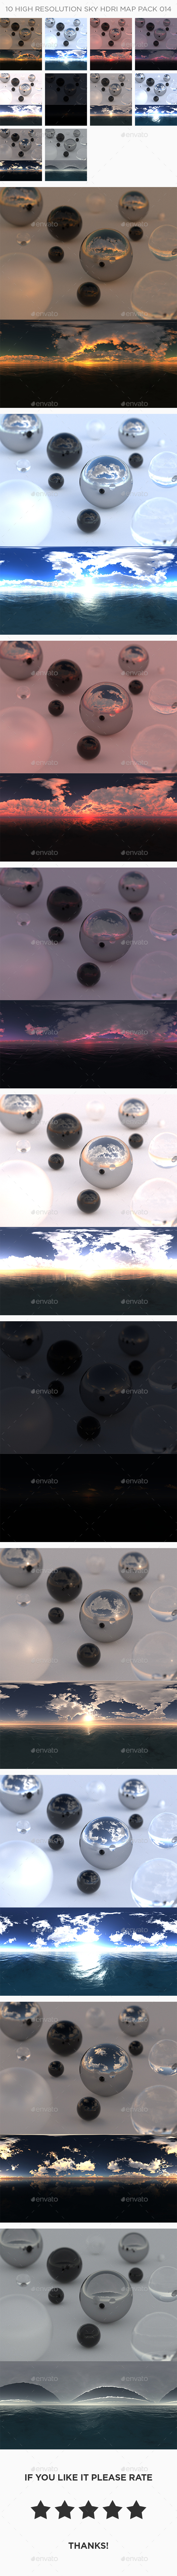 3DOcean 10 High Resolution Sky HDRi Maps Pack 014 21104057